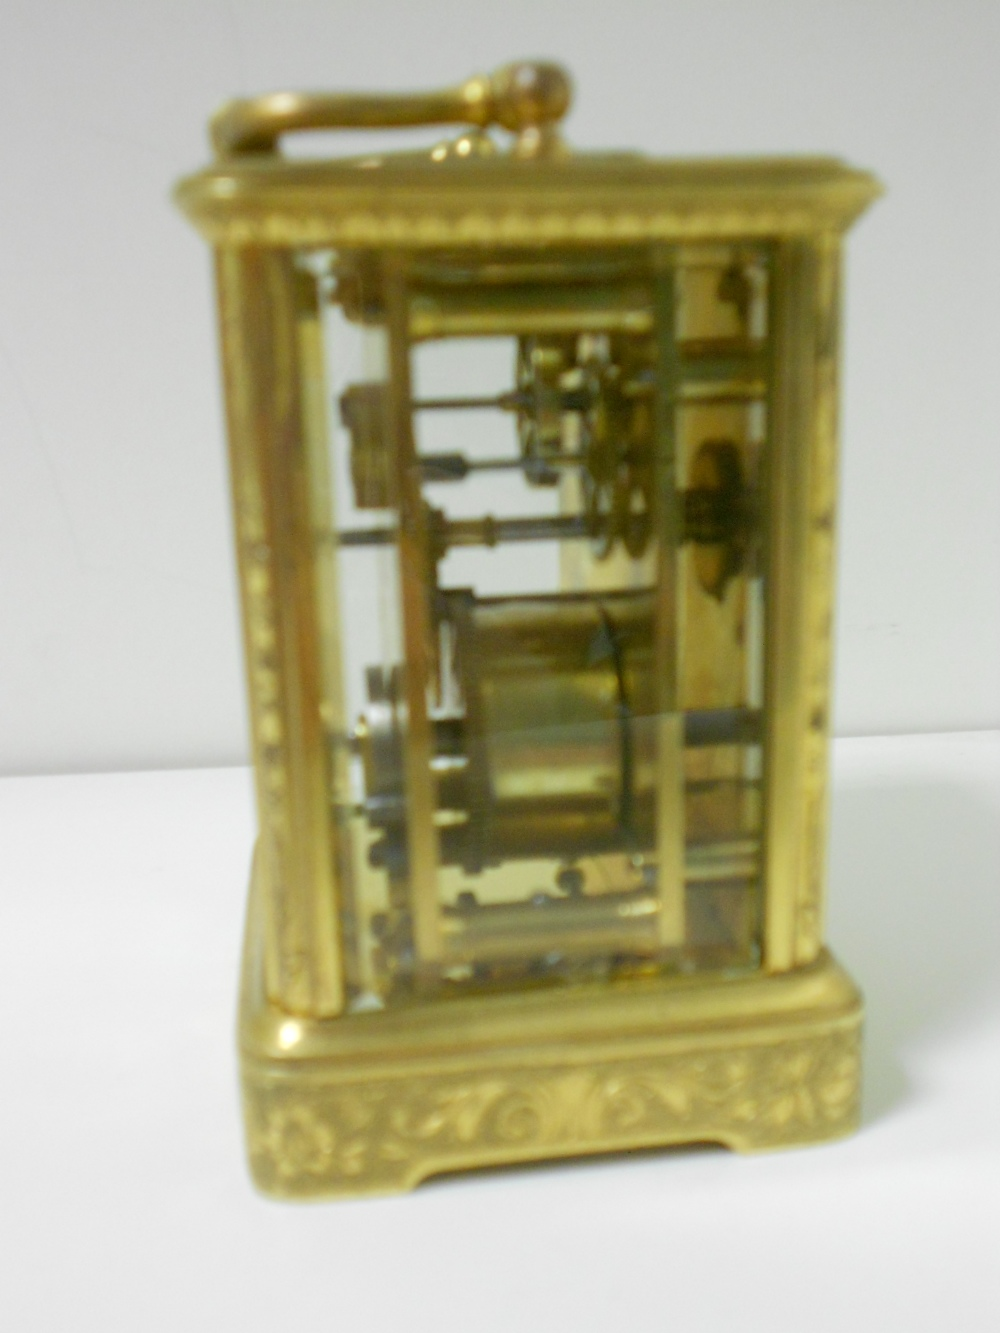 Lot 675 - A small French gilt brass carriage timepiece, with floral scroll engraved case and 4.5cm rectangular